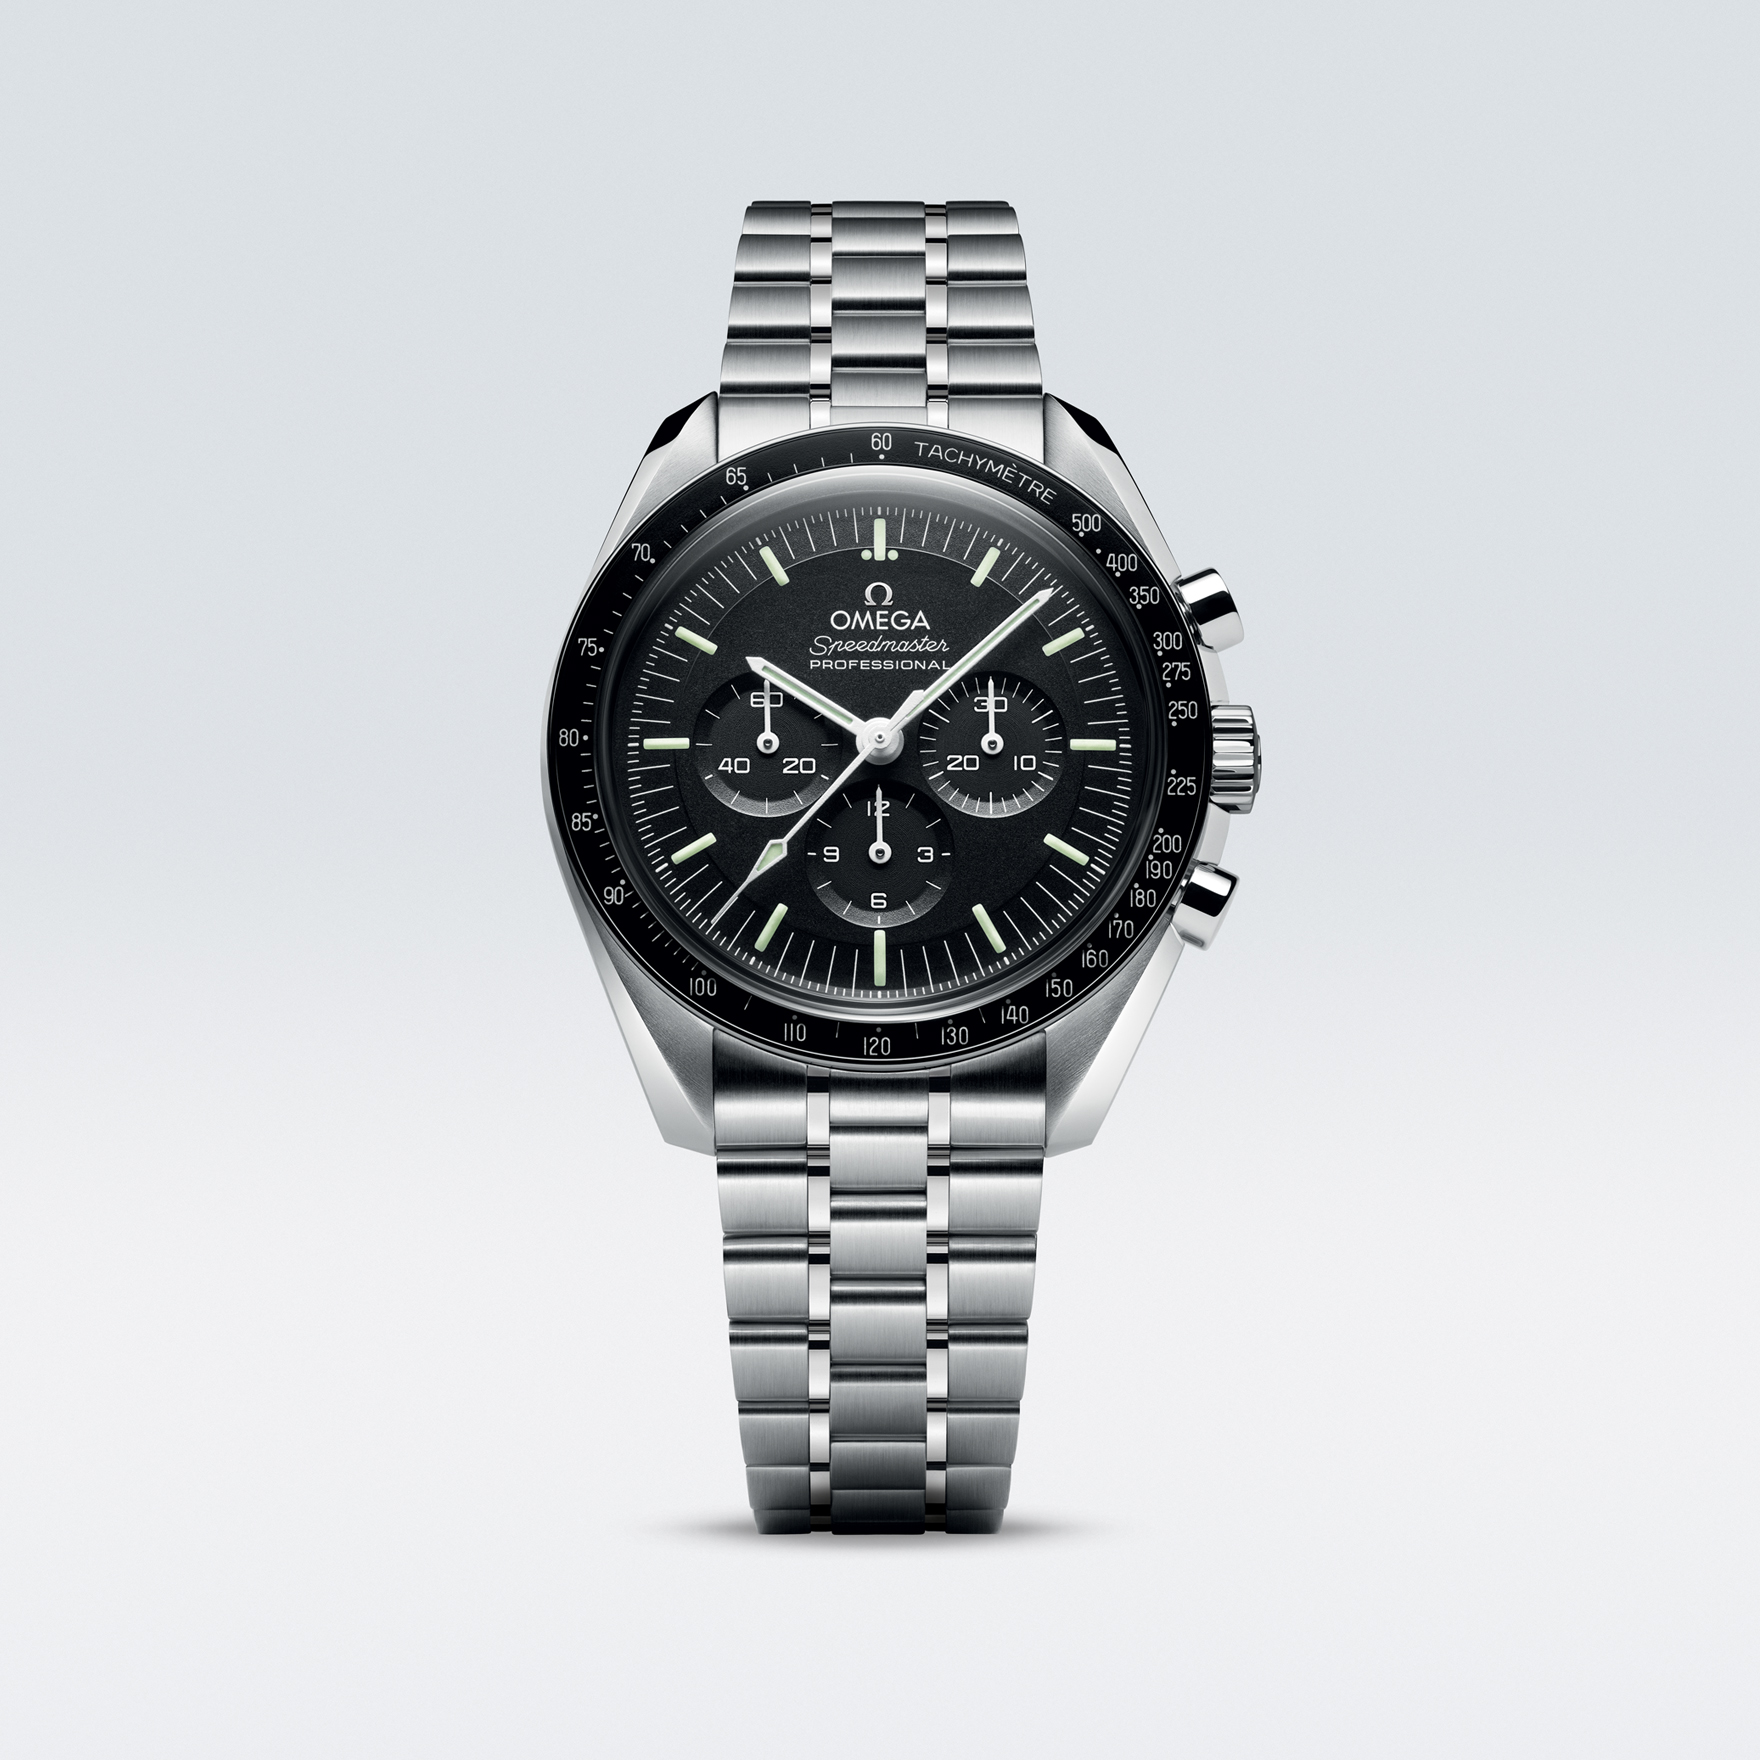 Speedmaster Moonwatch from OMEGA